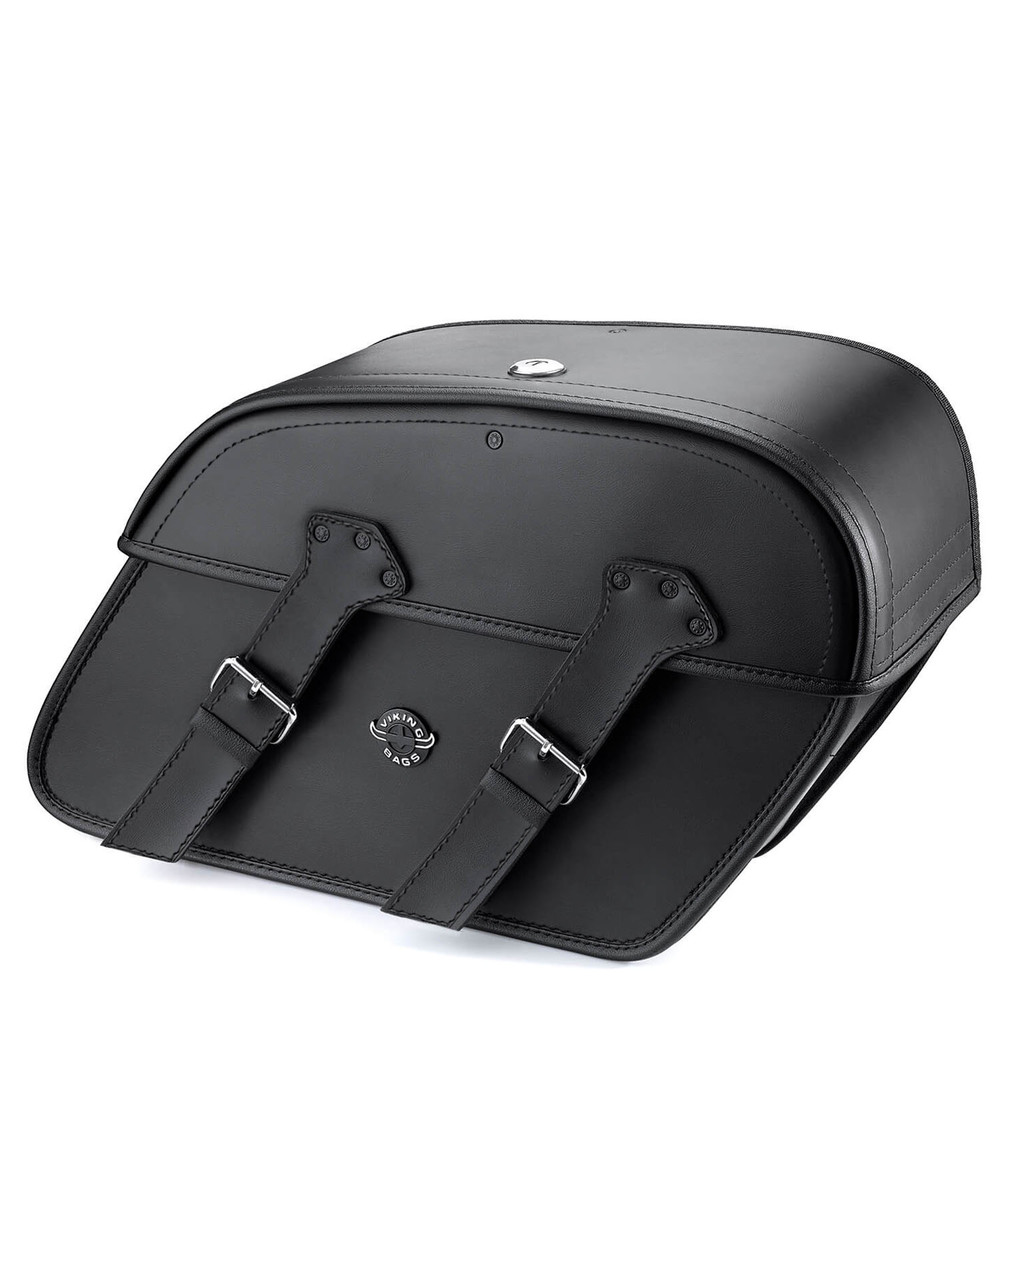 Viking Raven Large Leather Motorcycle Saddlebags For Harley Dyna Low Rider FXDL Main Bag View